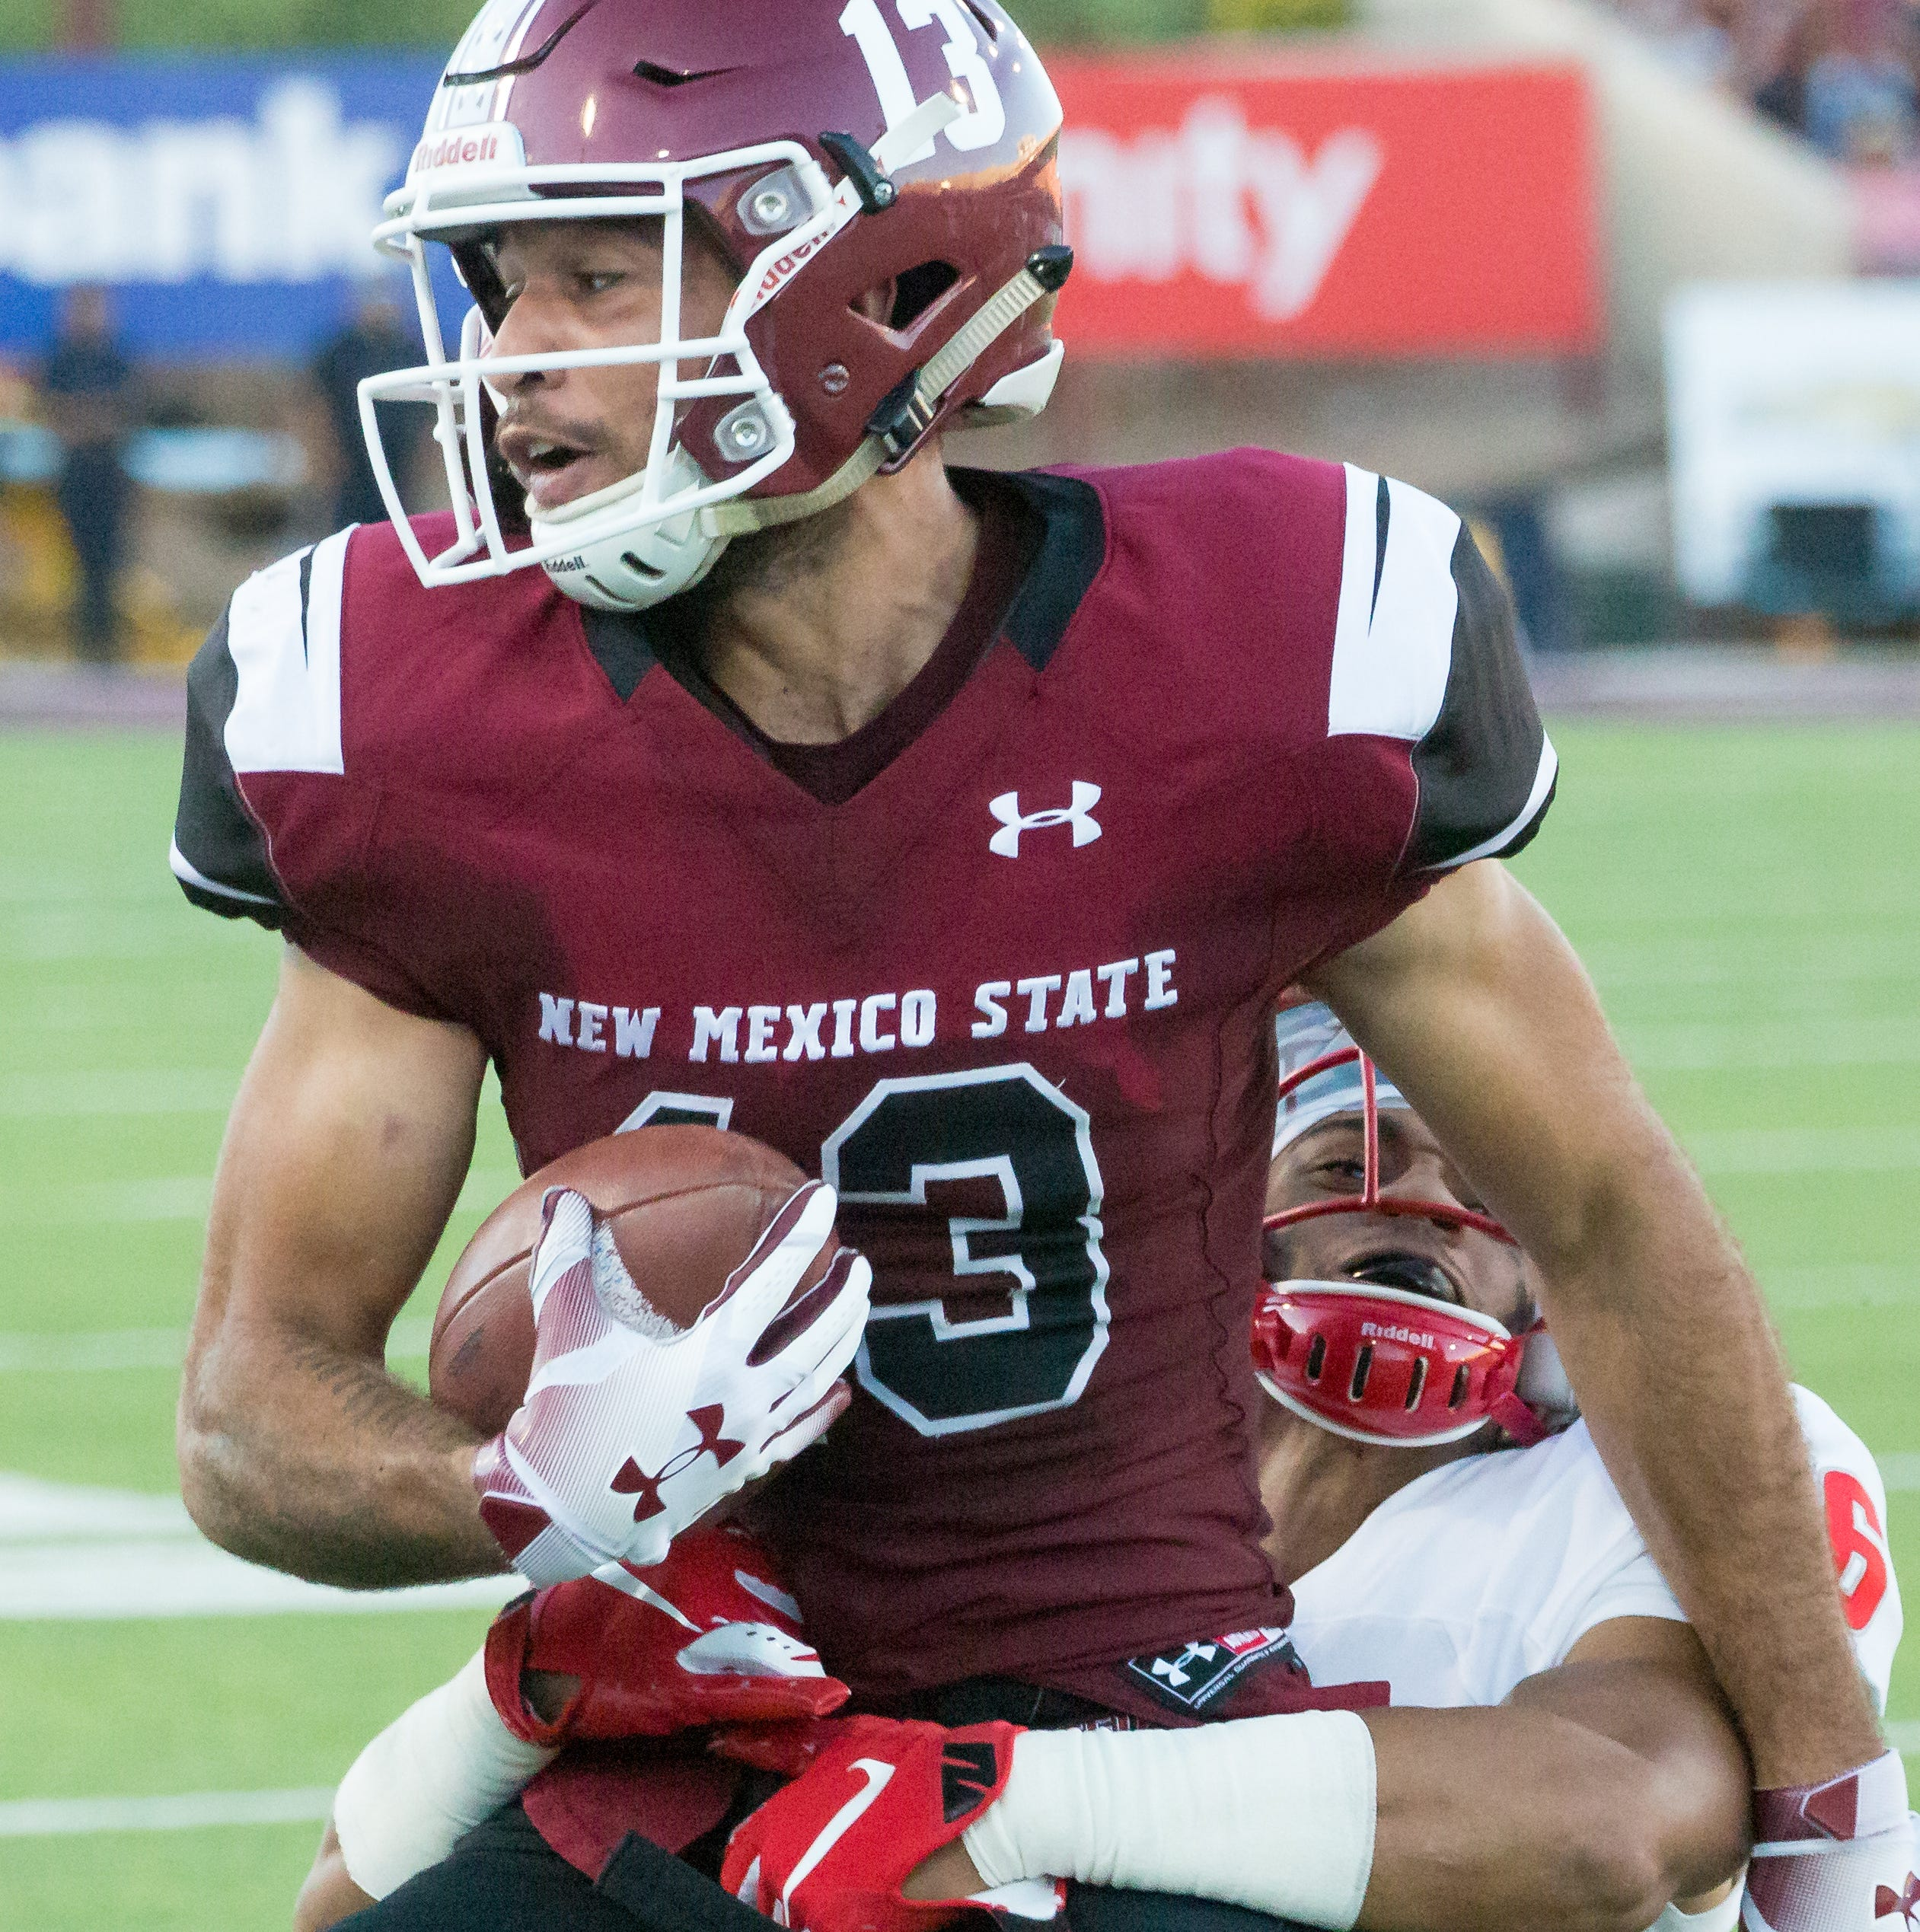 New Mexico State drops to 0-4 after loss to rival New Mexico